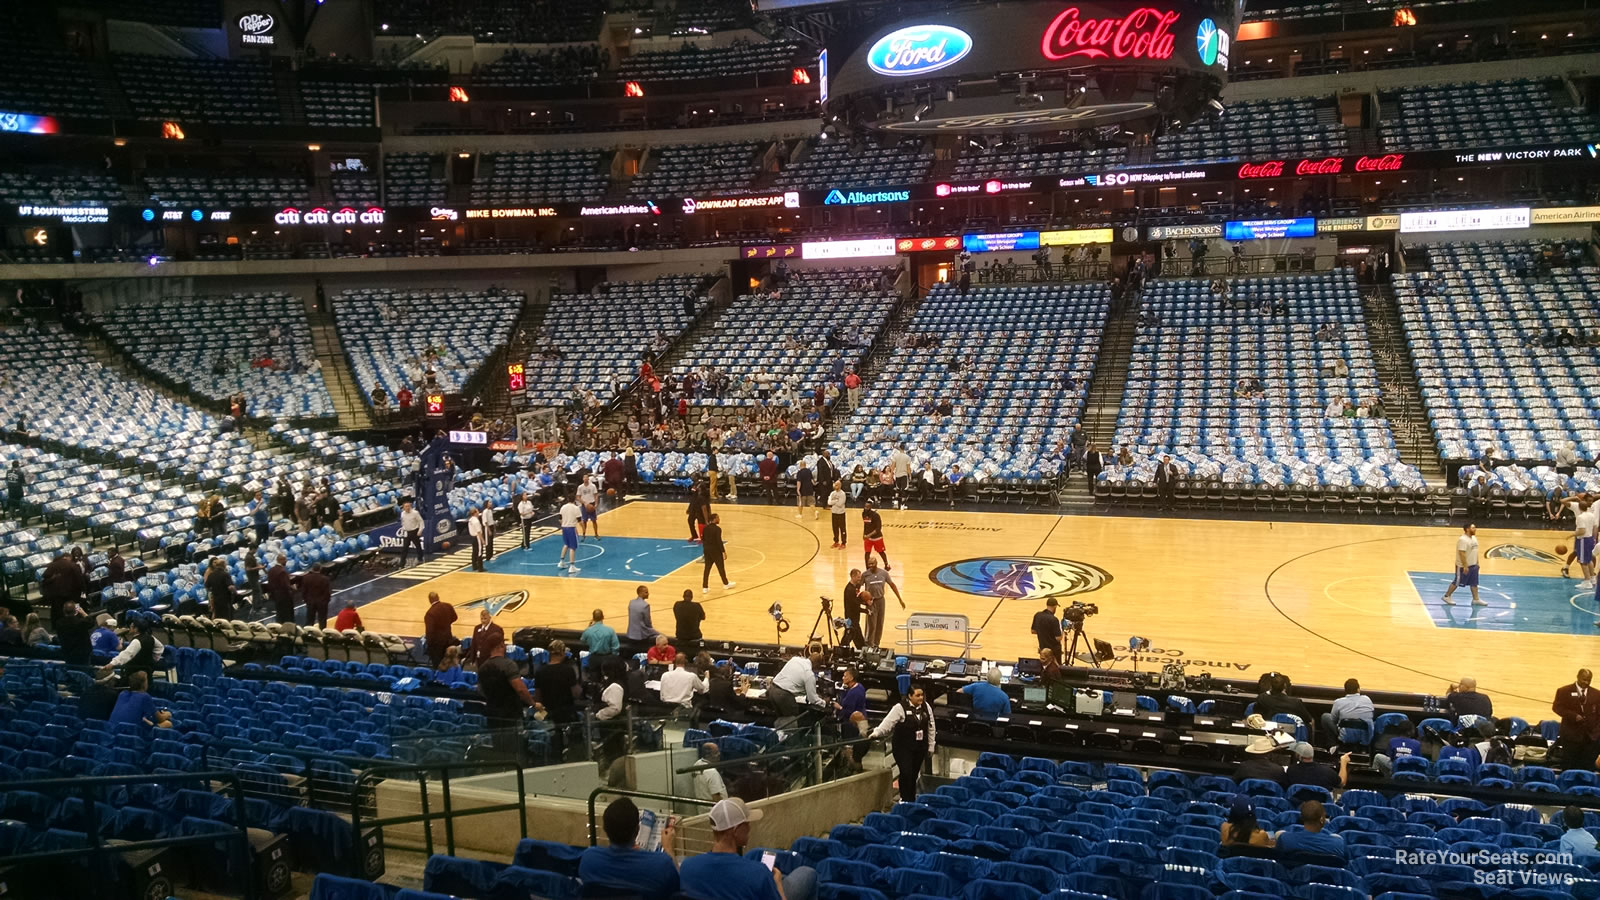 Section 118 seat view